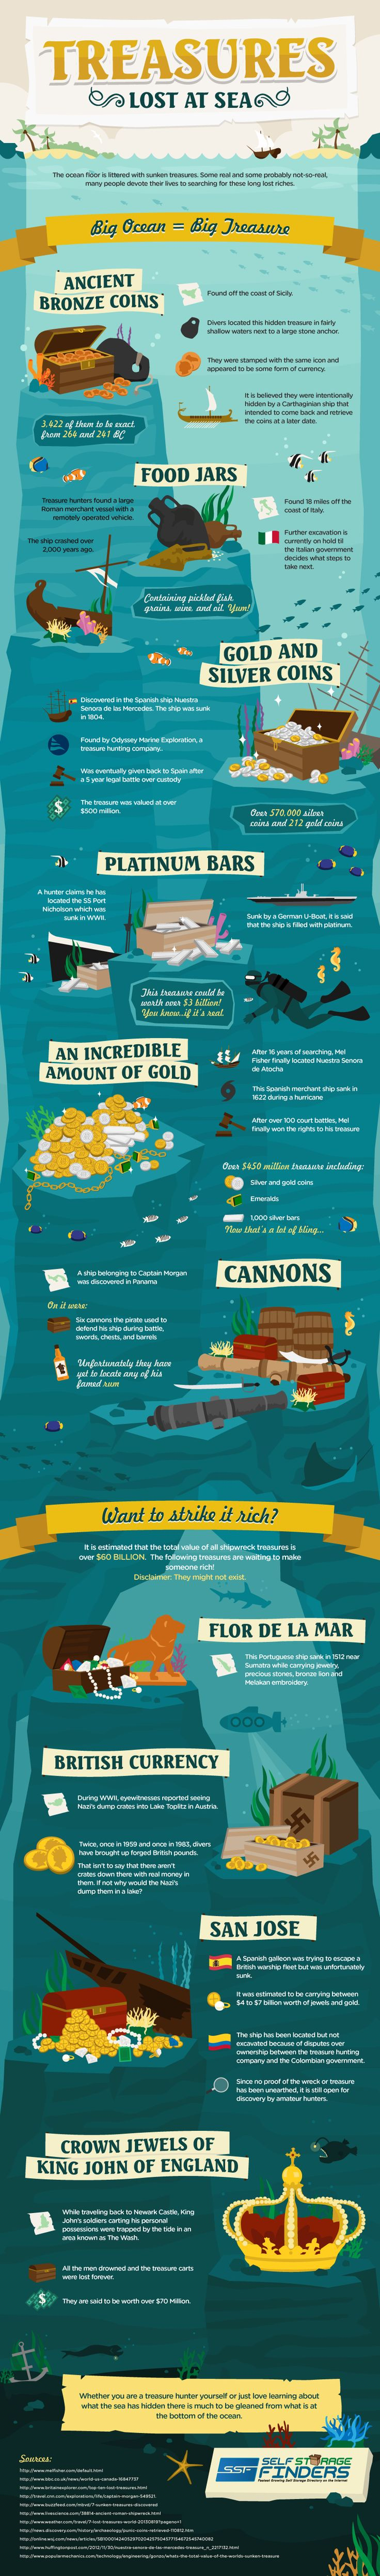 Infographic: Treasures Lost at Sea